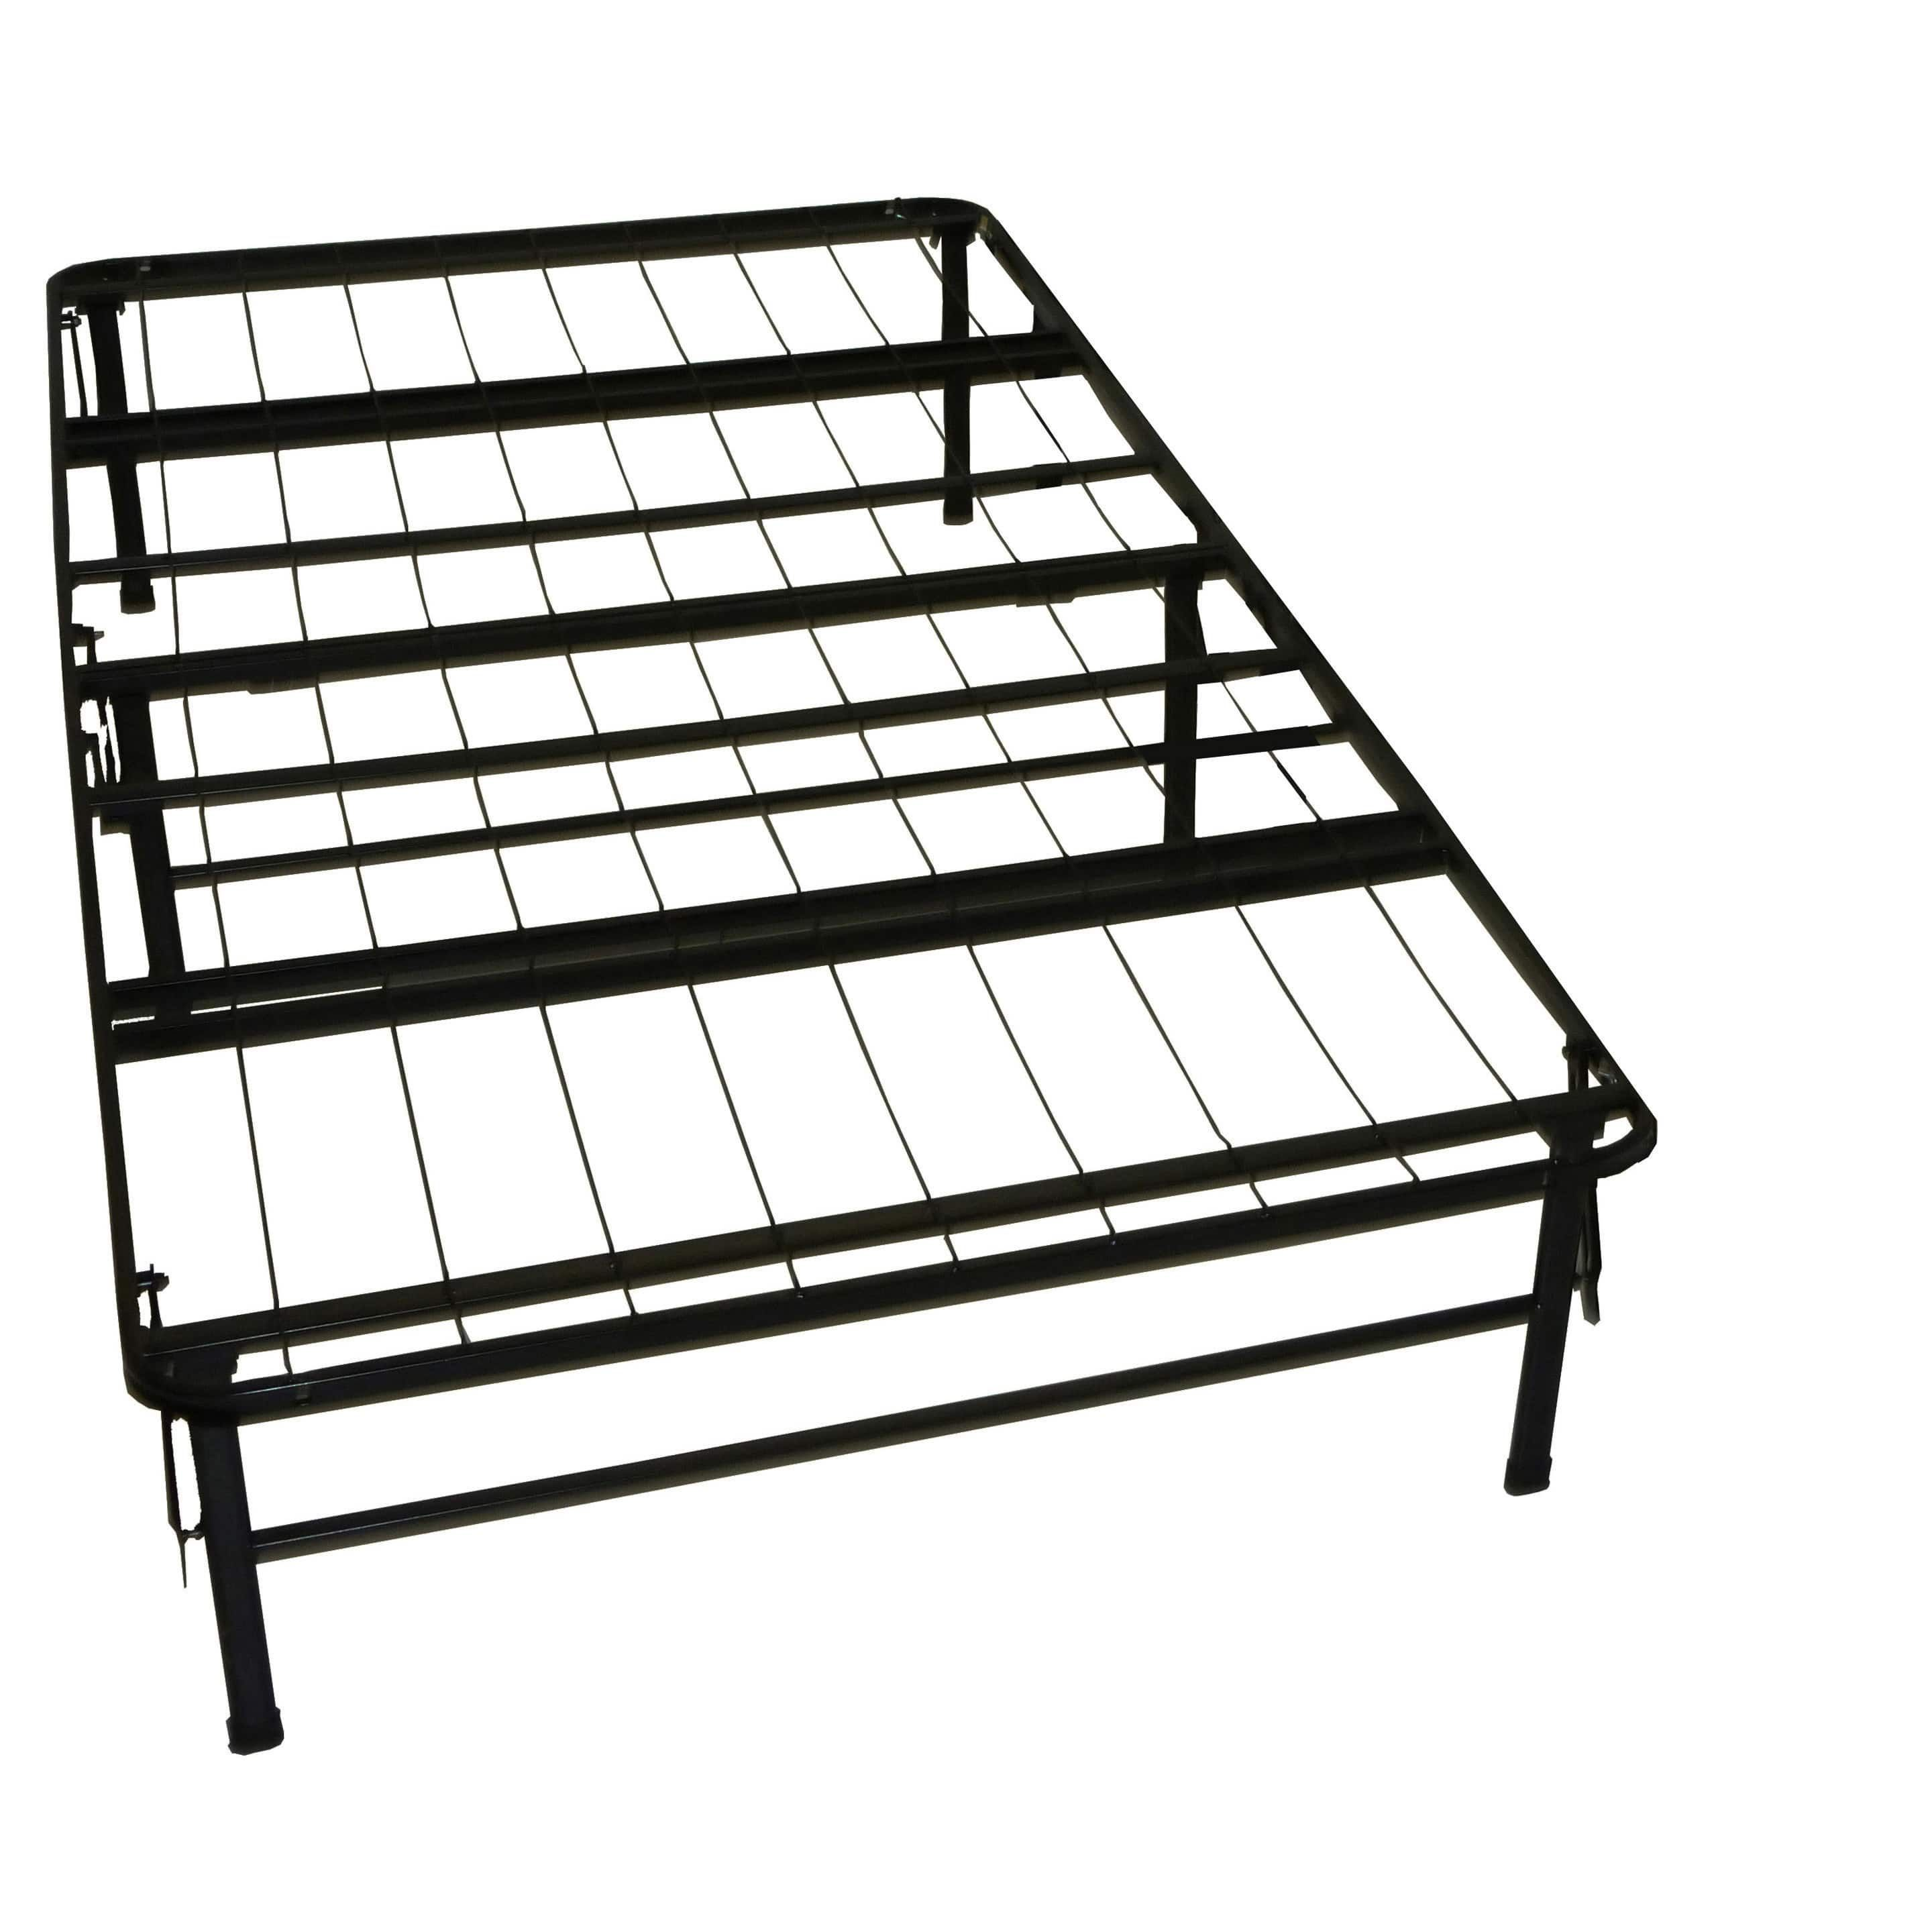 epicfurnishings durabed twin extra long size heavy duty steel